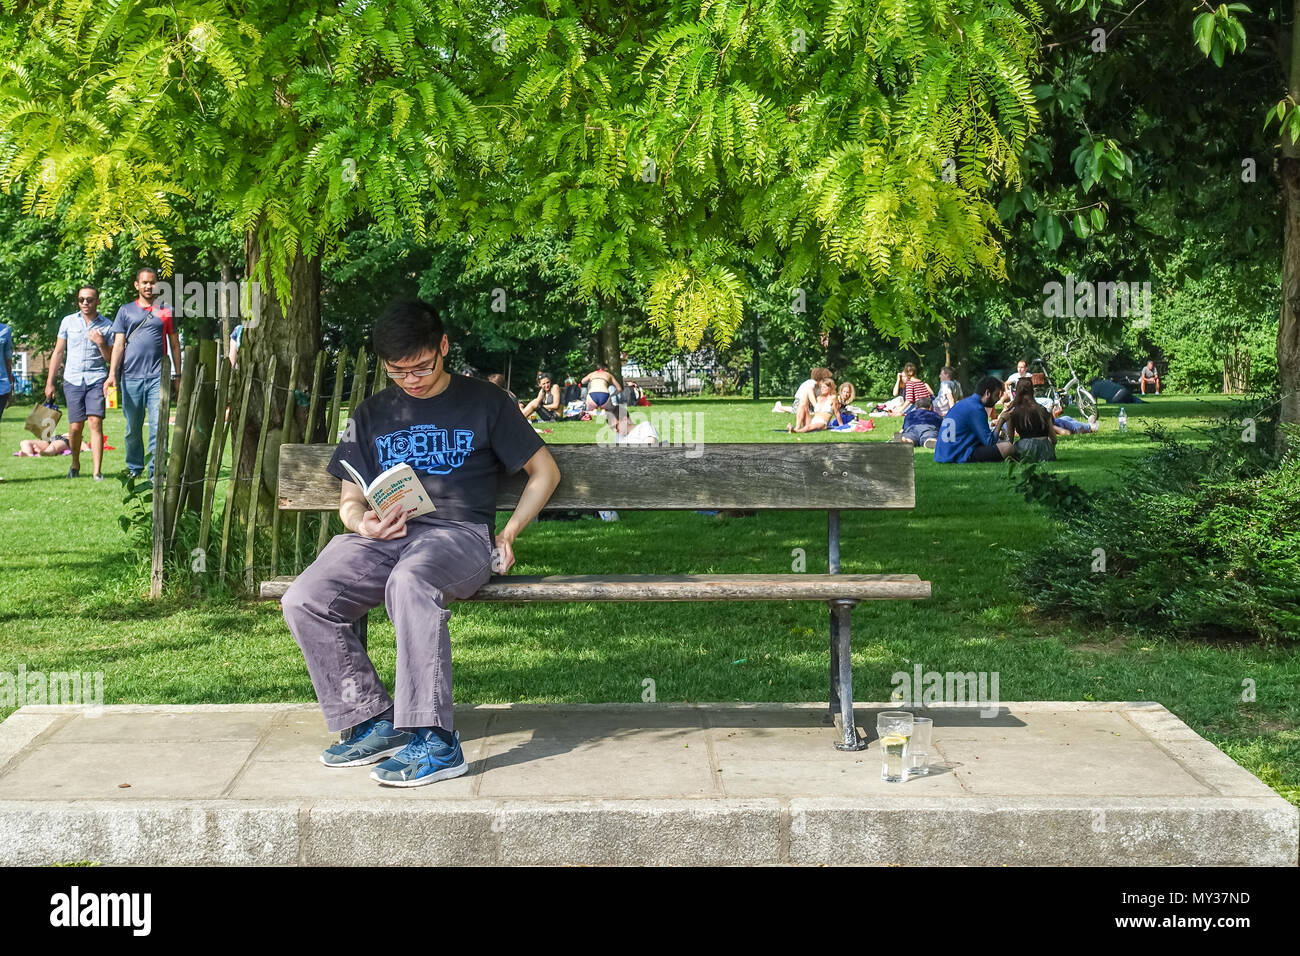 A young adult male sits on a park bench reading a book on a hot, sunny day in Furnival Gardens, Hammersmith, London. - Stock Image